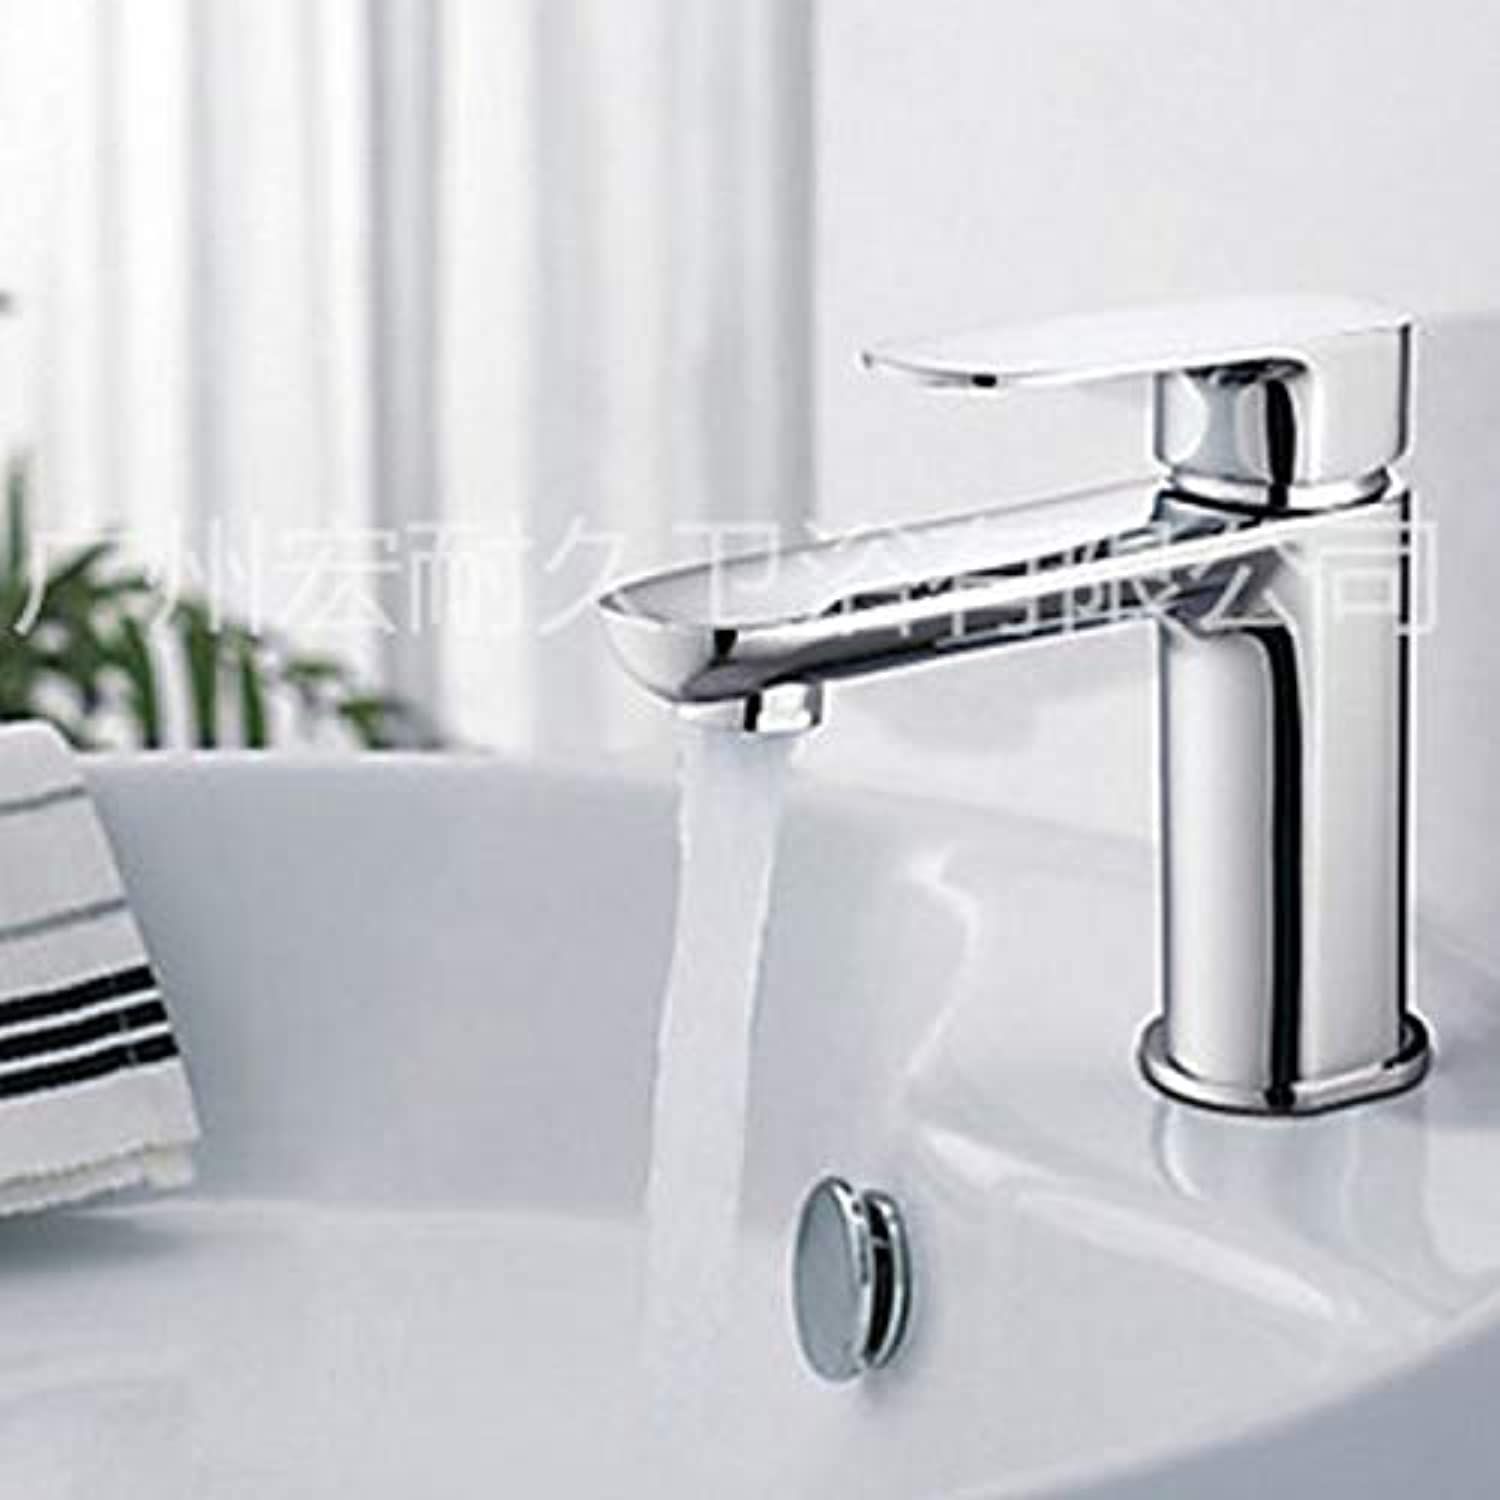 redOOY Diy???Bathroom Sink Taps Taps Faucet Basin Faucet Single Hole Bathroom Basin Faucet Hot and Cold Faucet